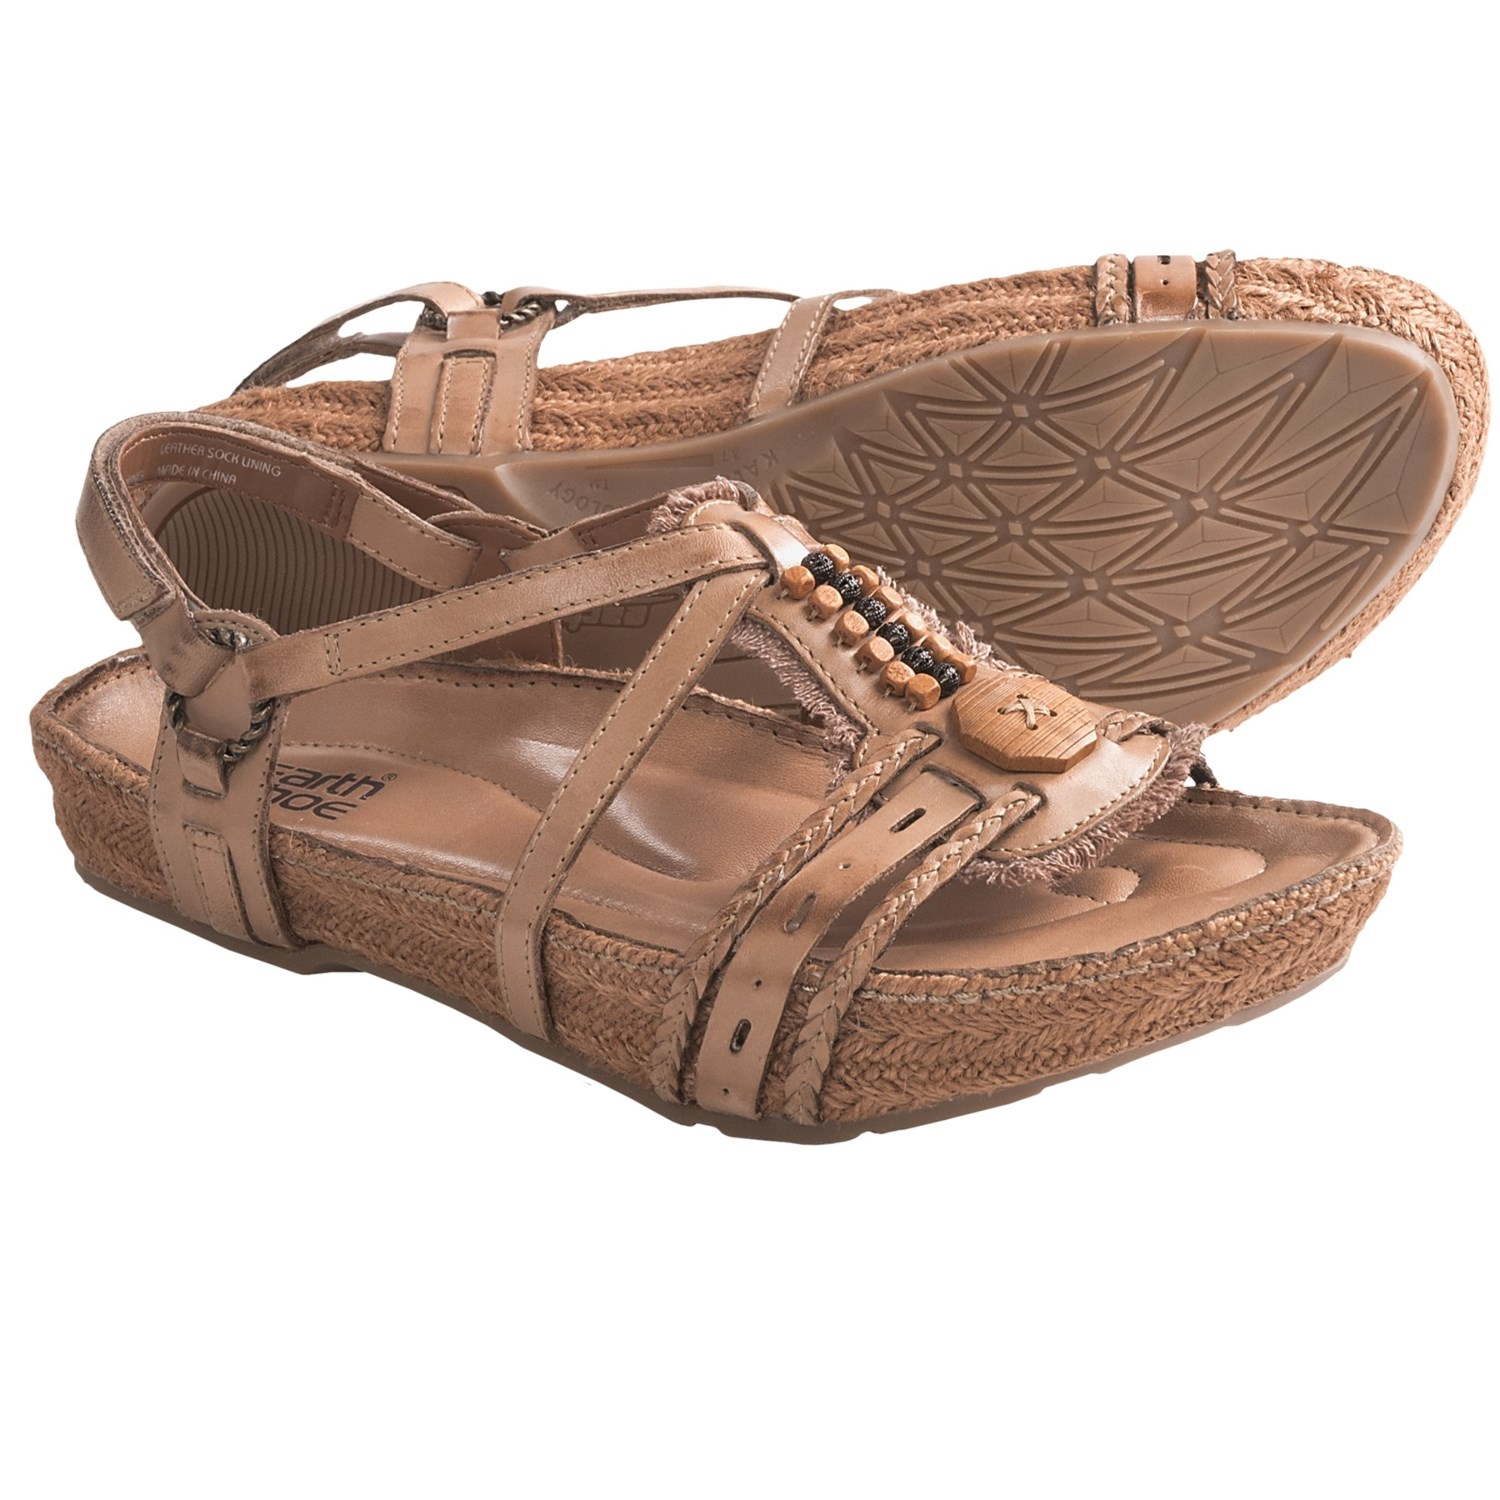 Earth Shoes For Women at Sierra Trading Post